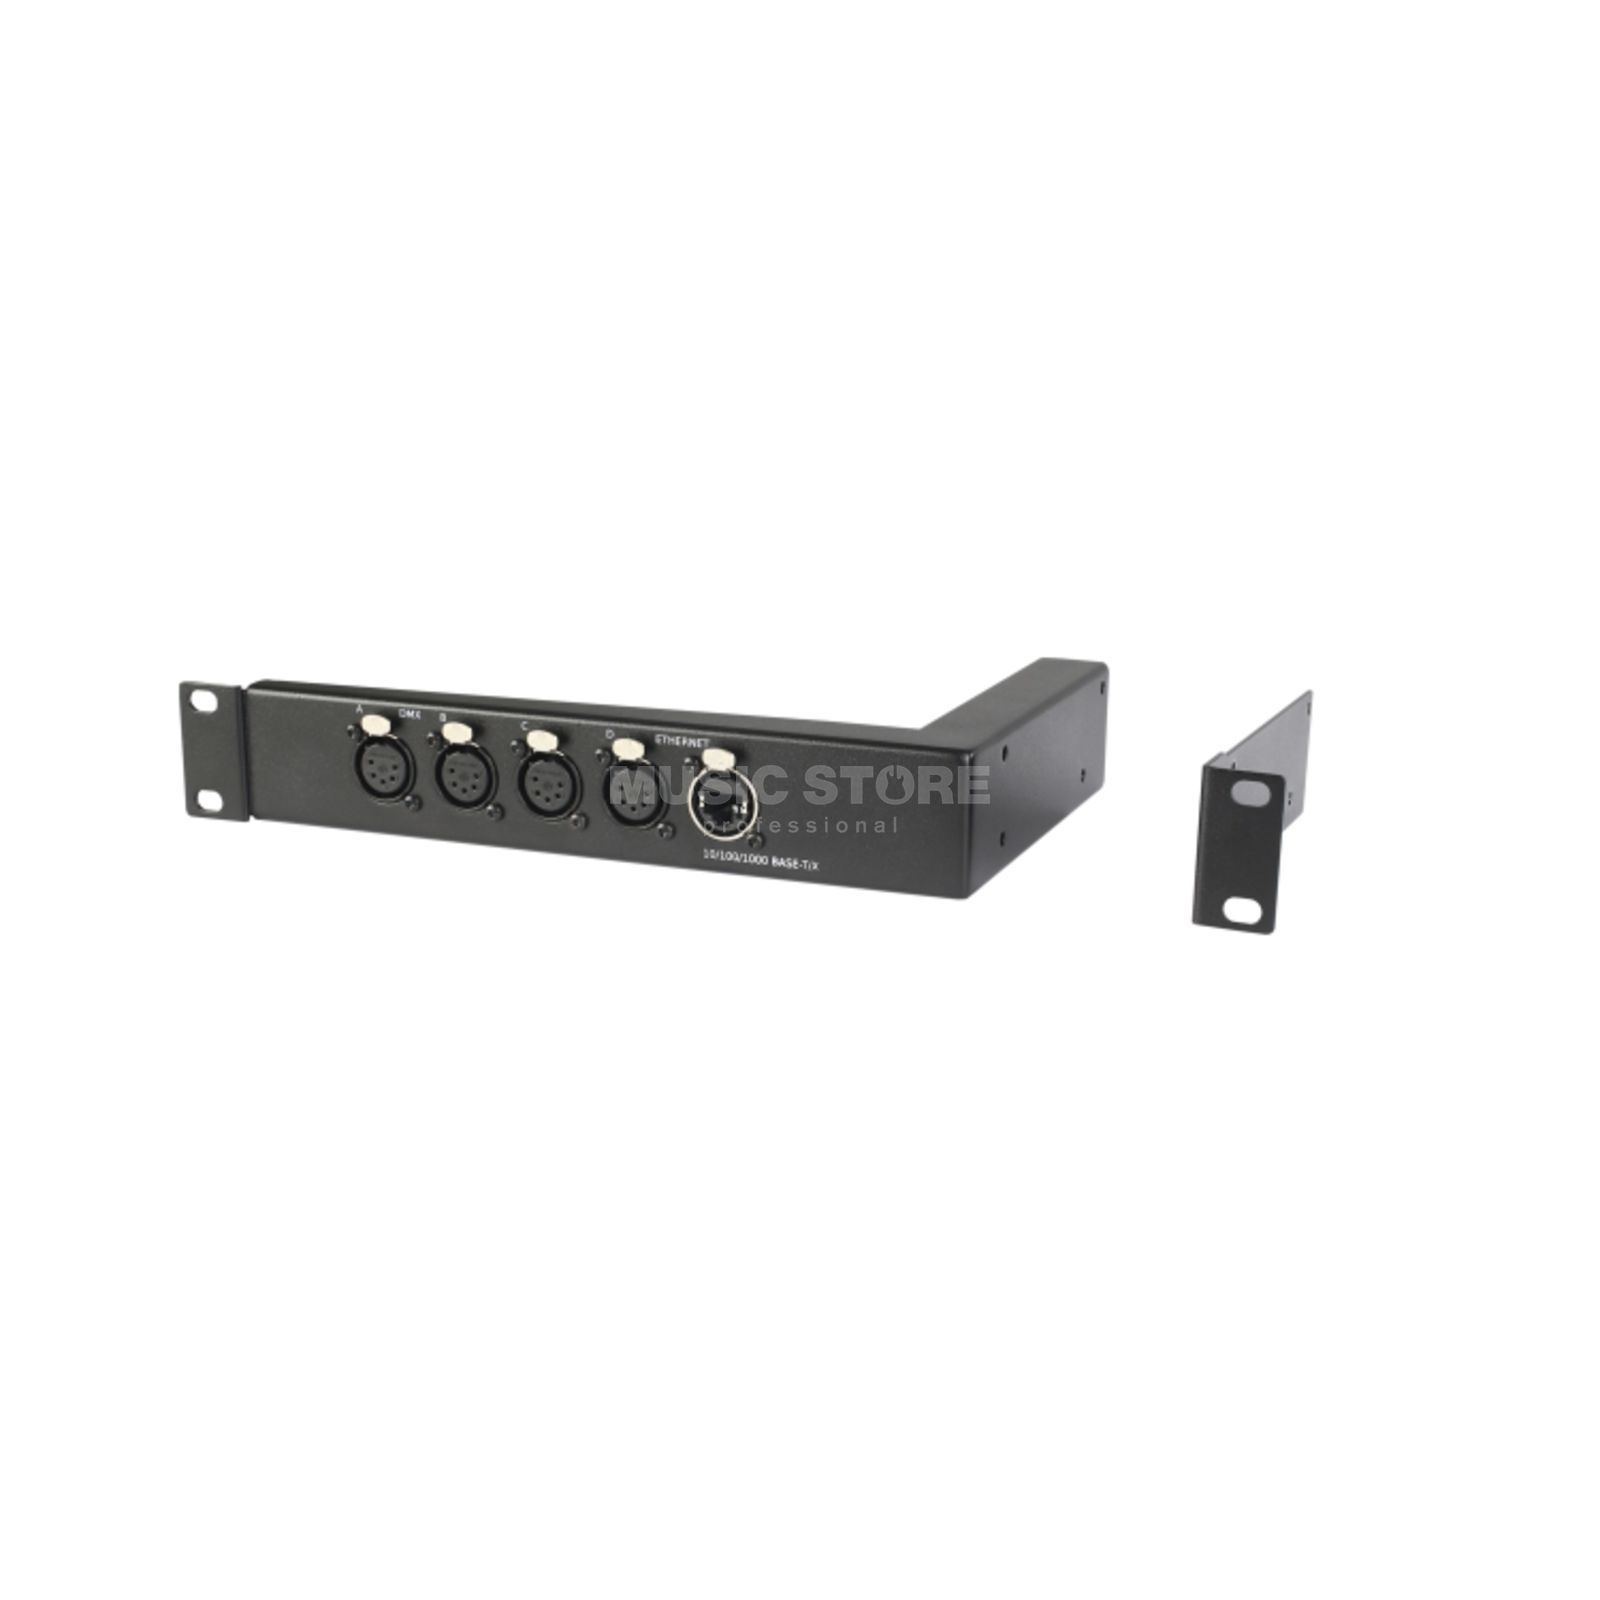 "MA Lighting 4Port Node 19"" Installation Kit XLR Rackmount, XLR/Ethernet Front Produktbillede"